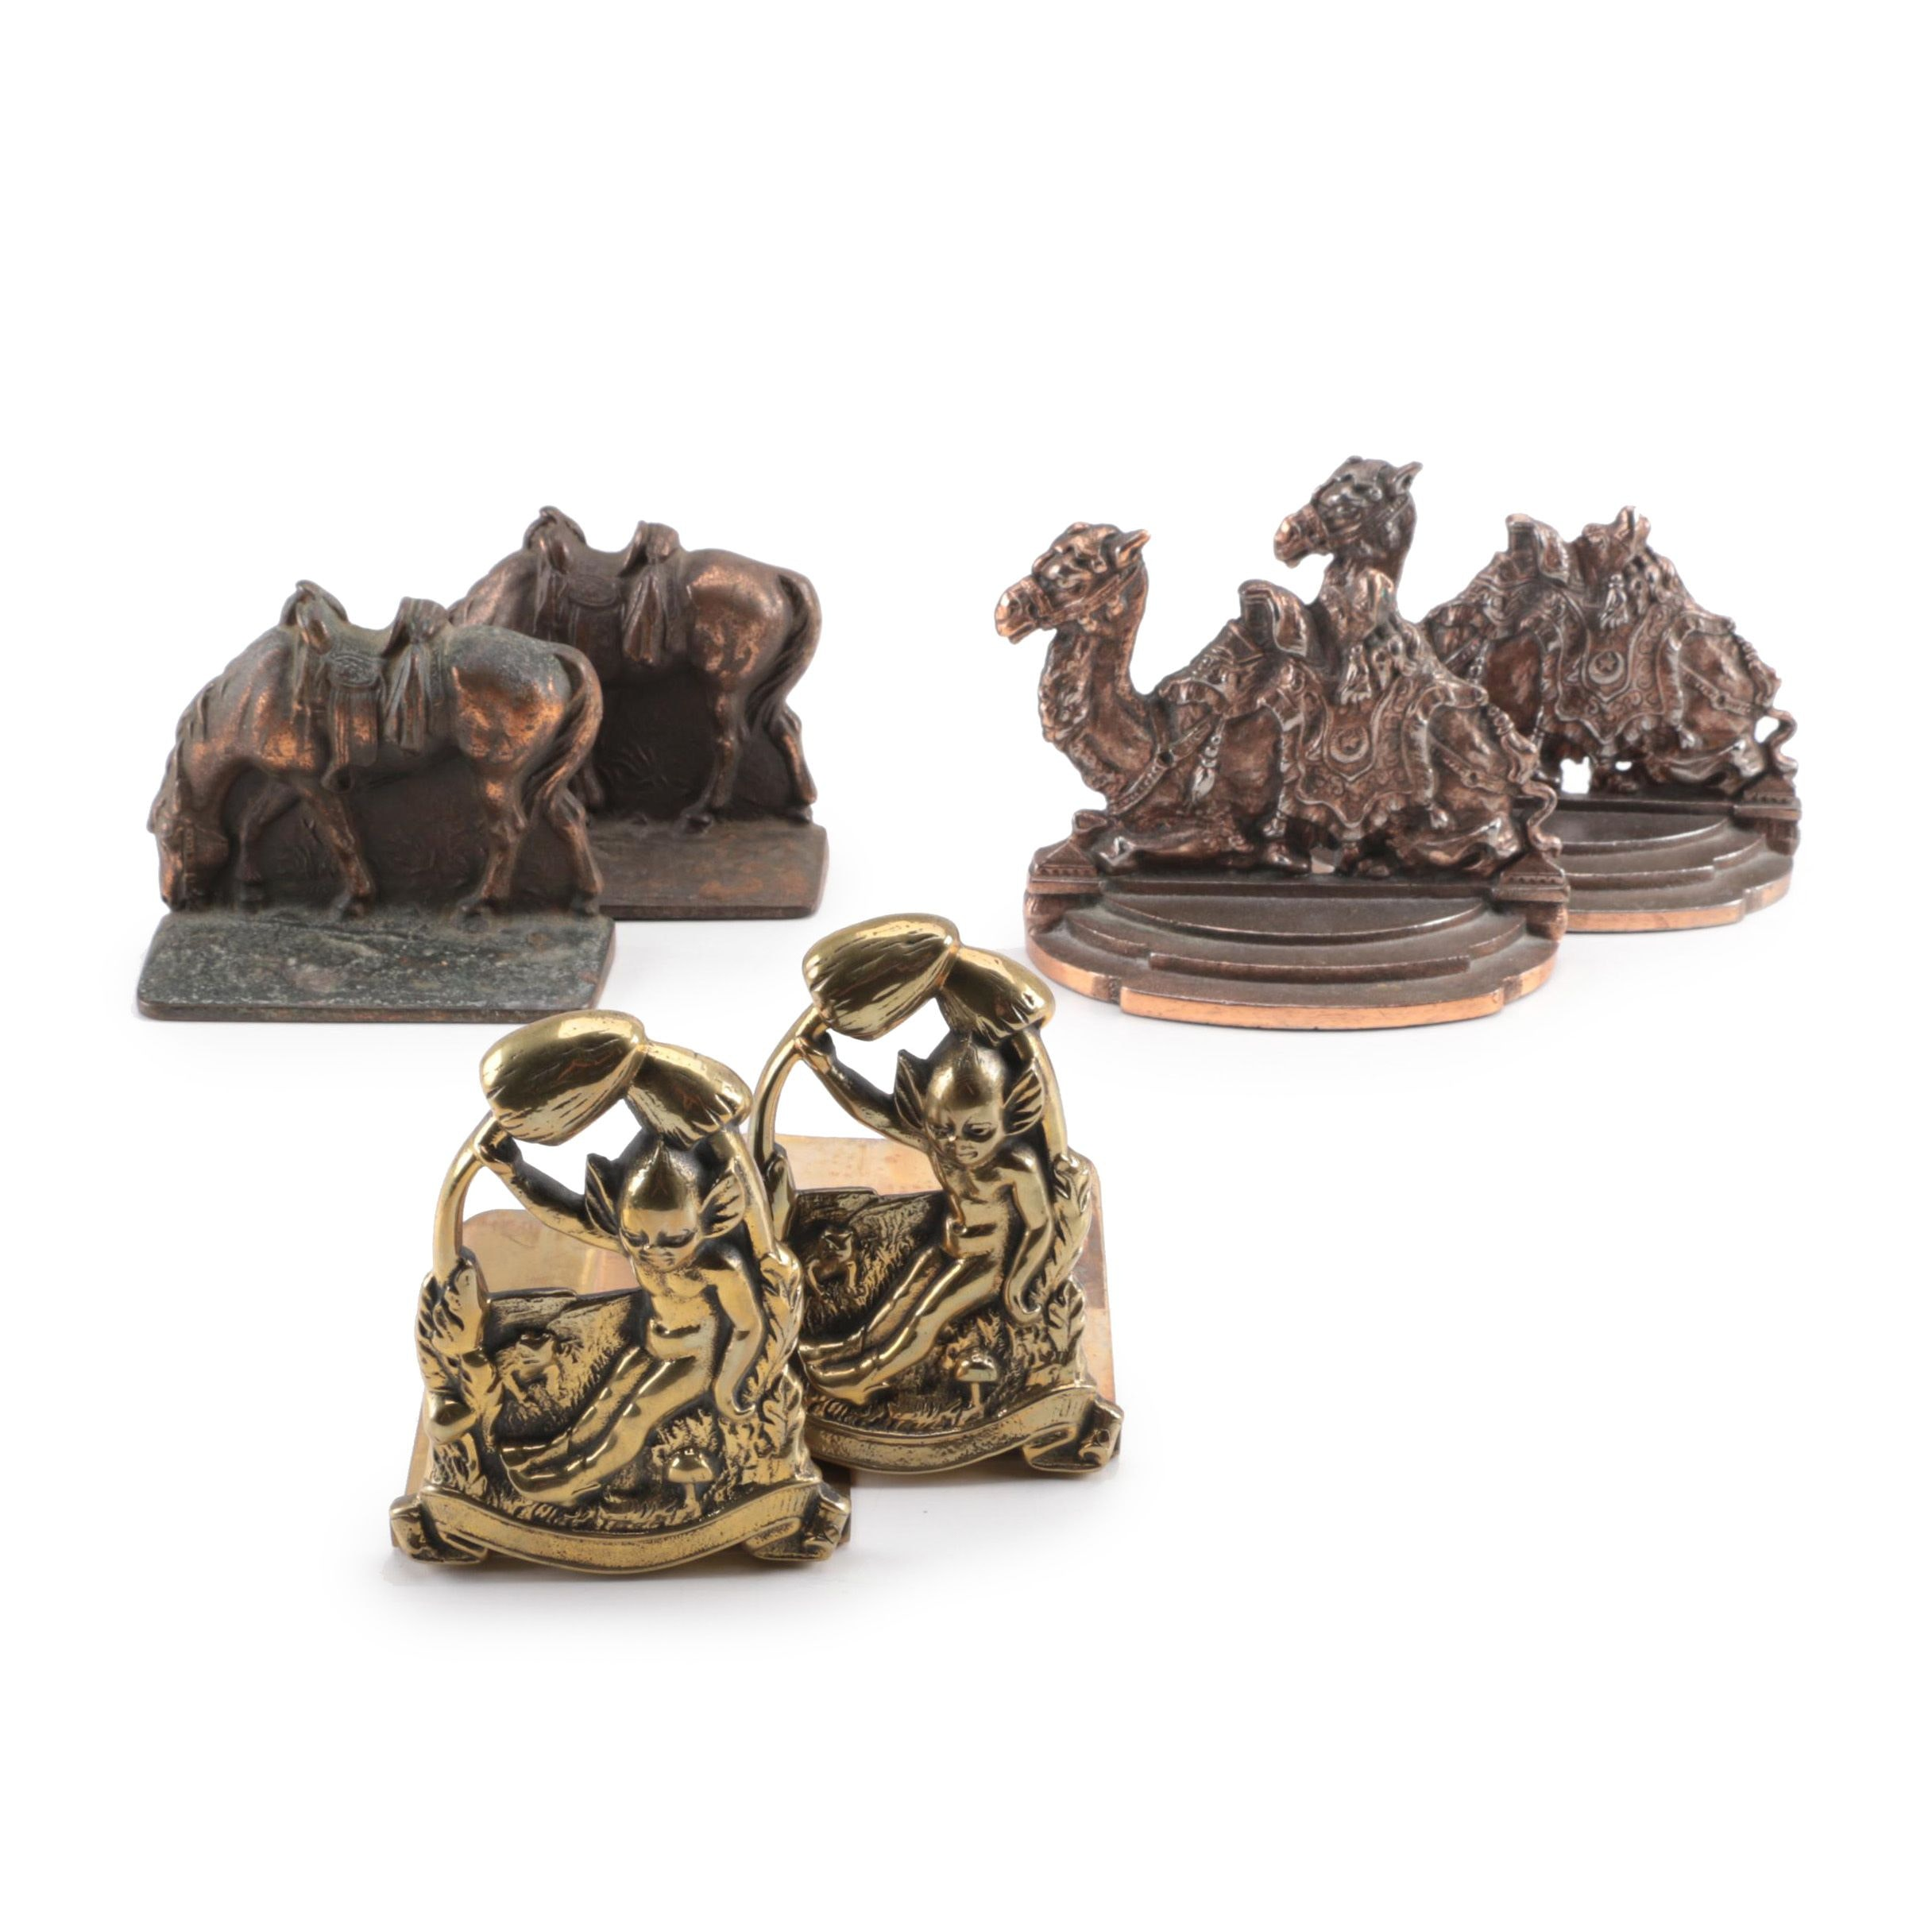 Bron Met Grazing Horse Bookends with Other Cast Metal Bookends